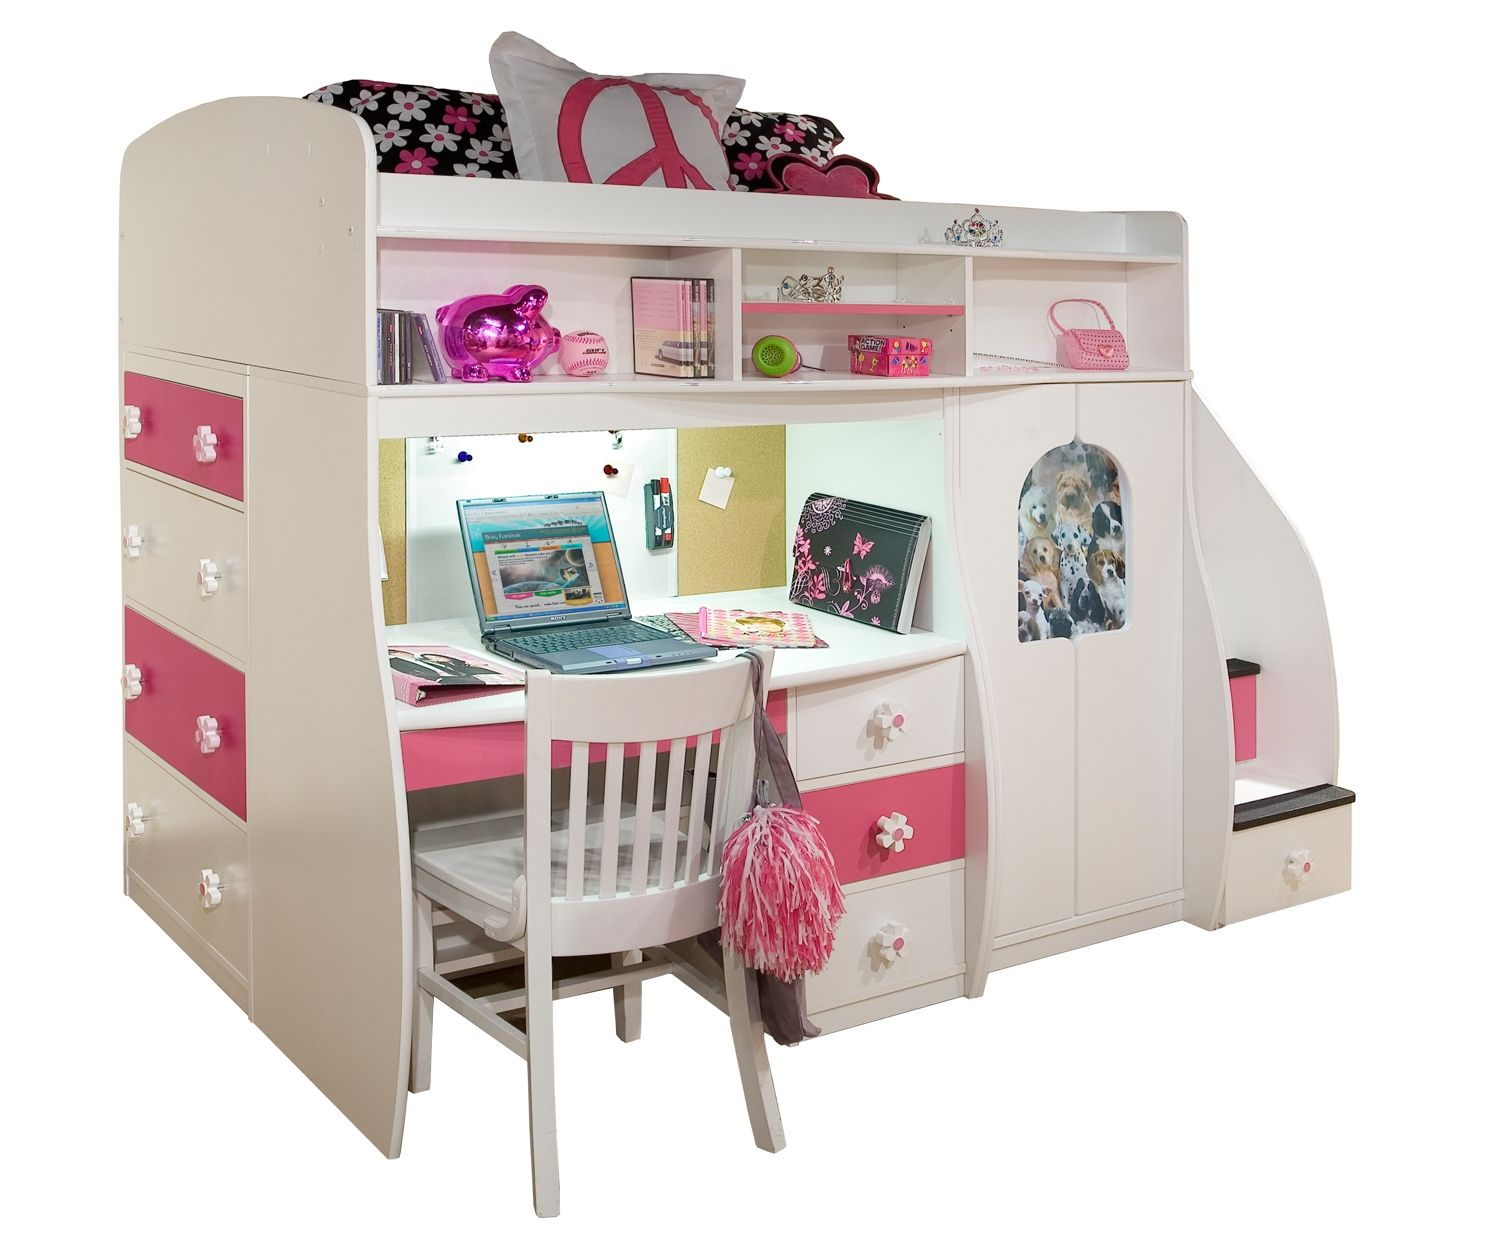 Loft bed with desk and stairs   Buy Berg Furniture Play and Study Loft Bed with staircase  Berg